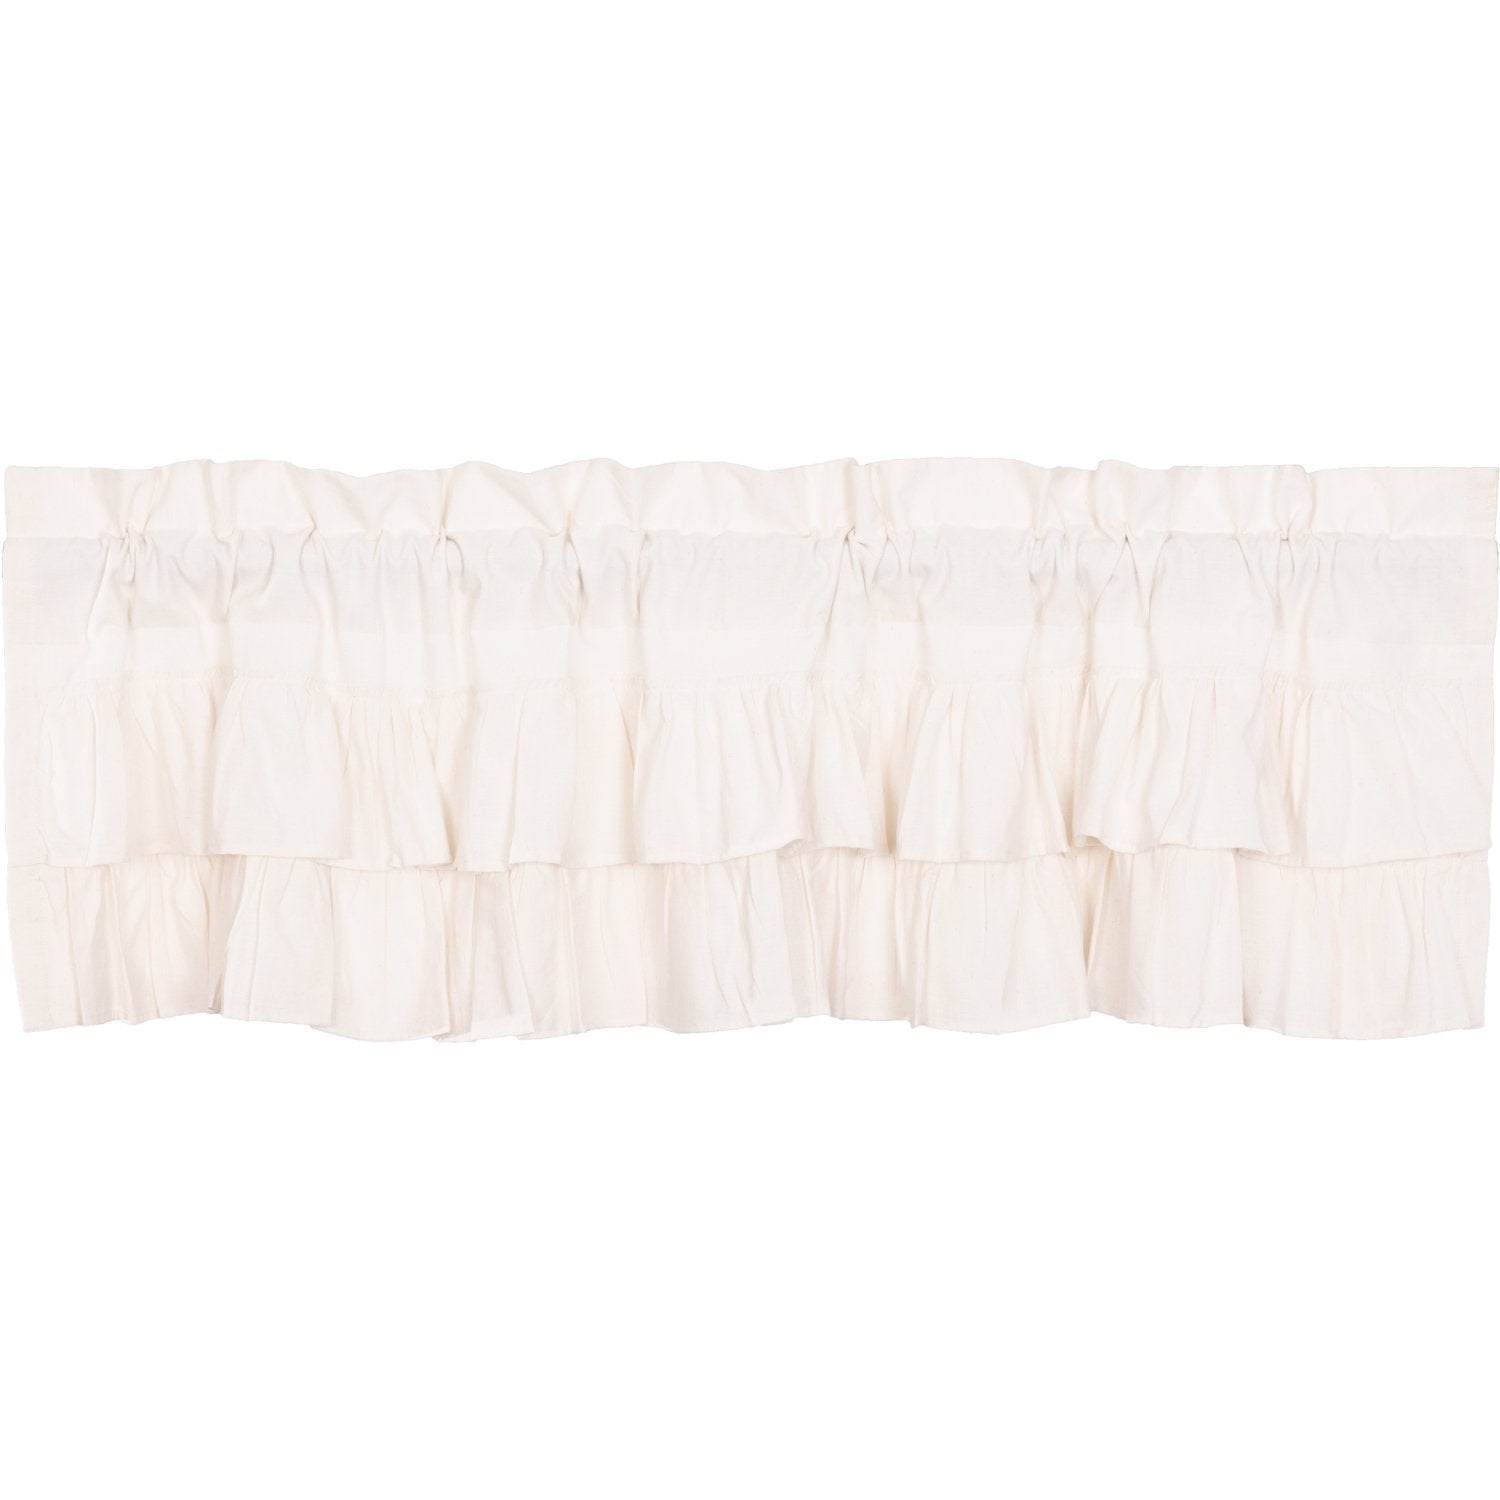 Simple Life Flax Antique White Ruffled Valance.